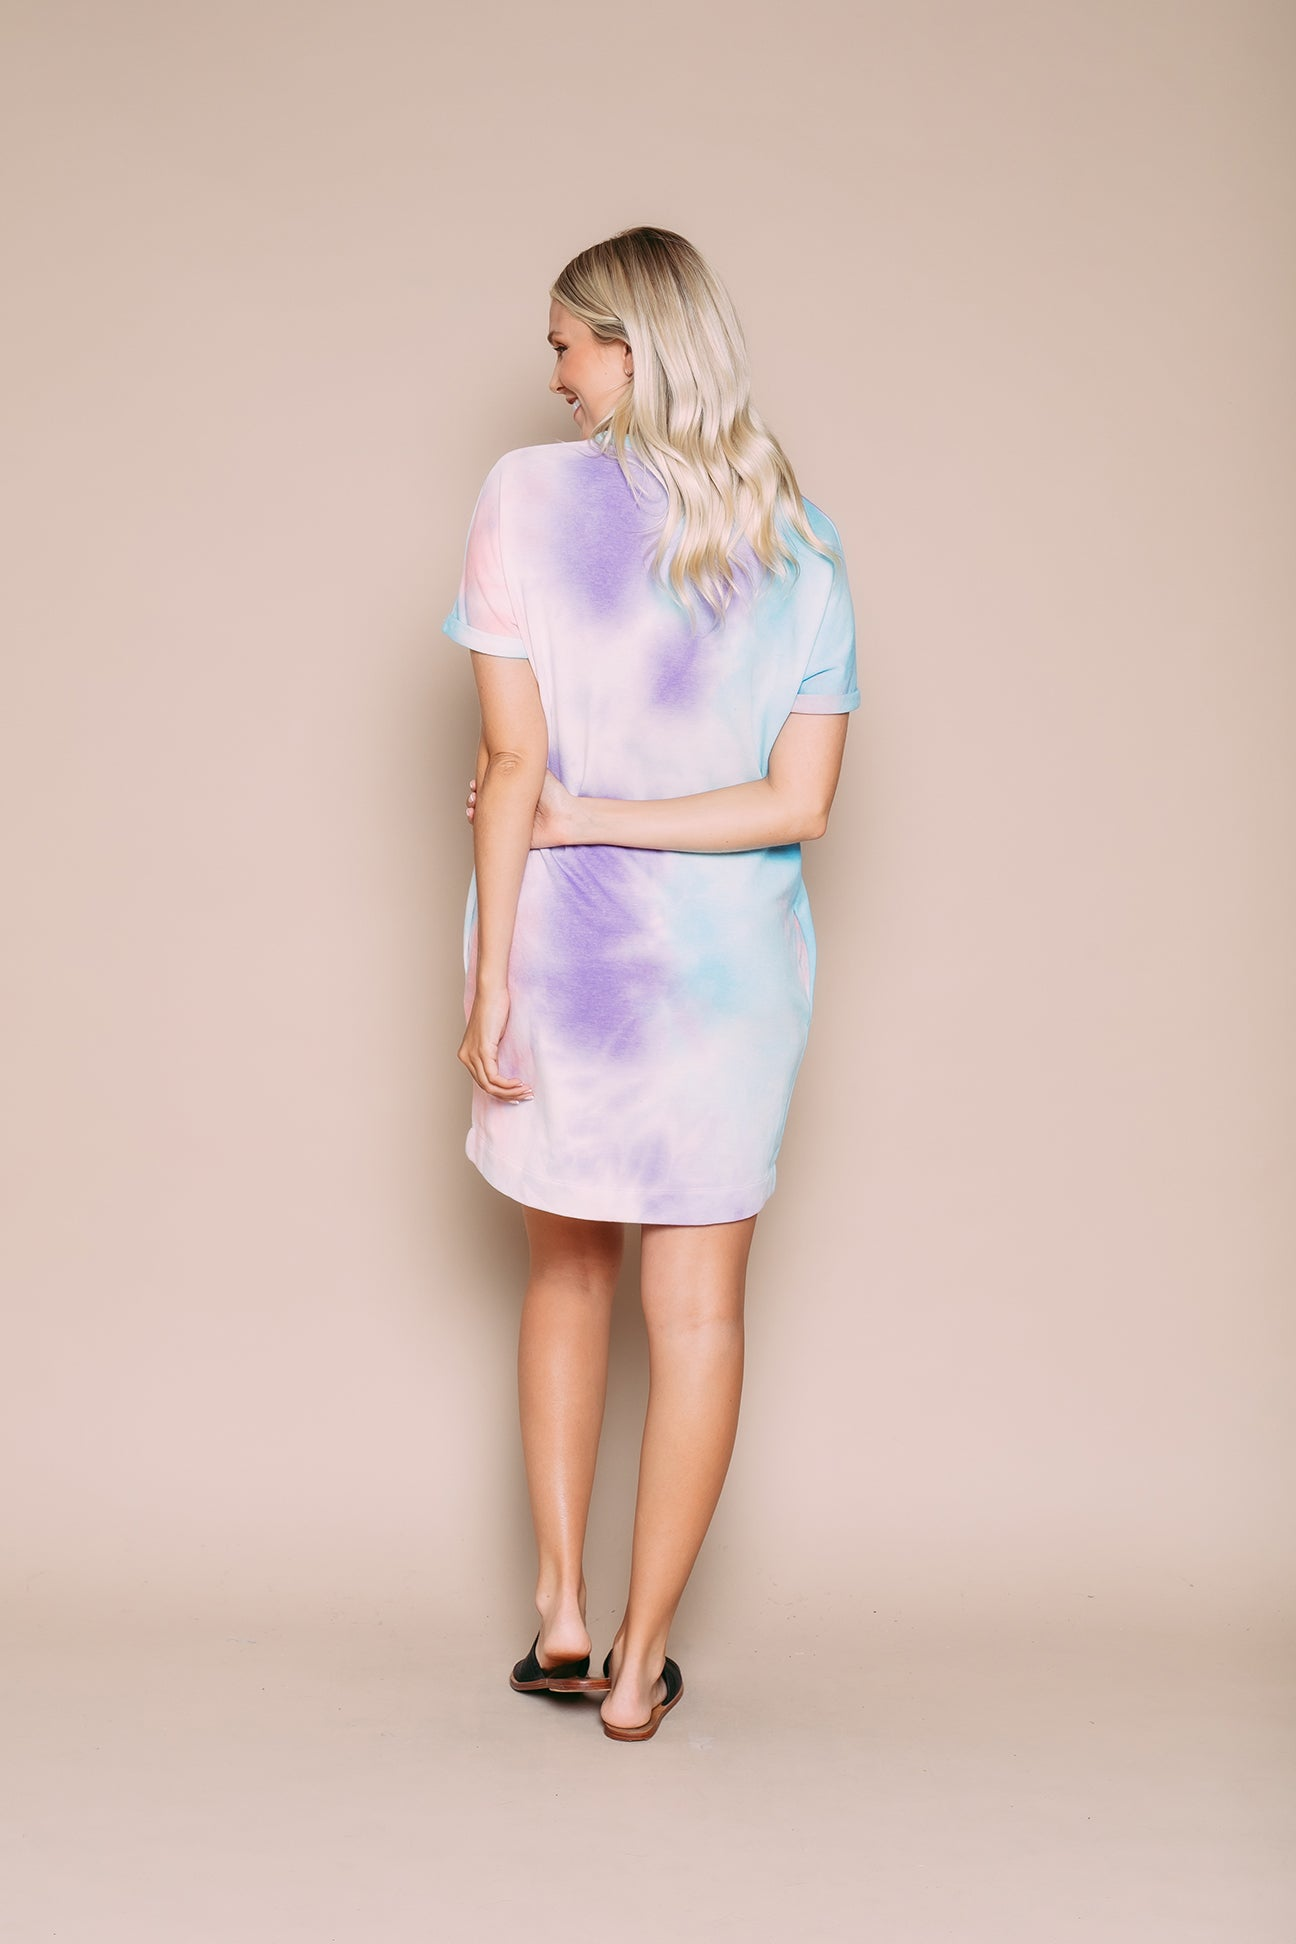 Laney - Supersoft Rolled Cuff Dress Cotton Candy Tie Dye